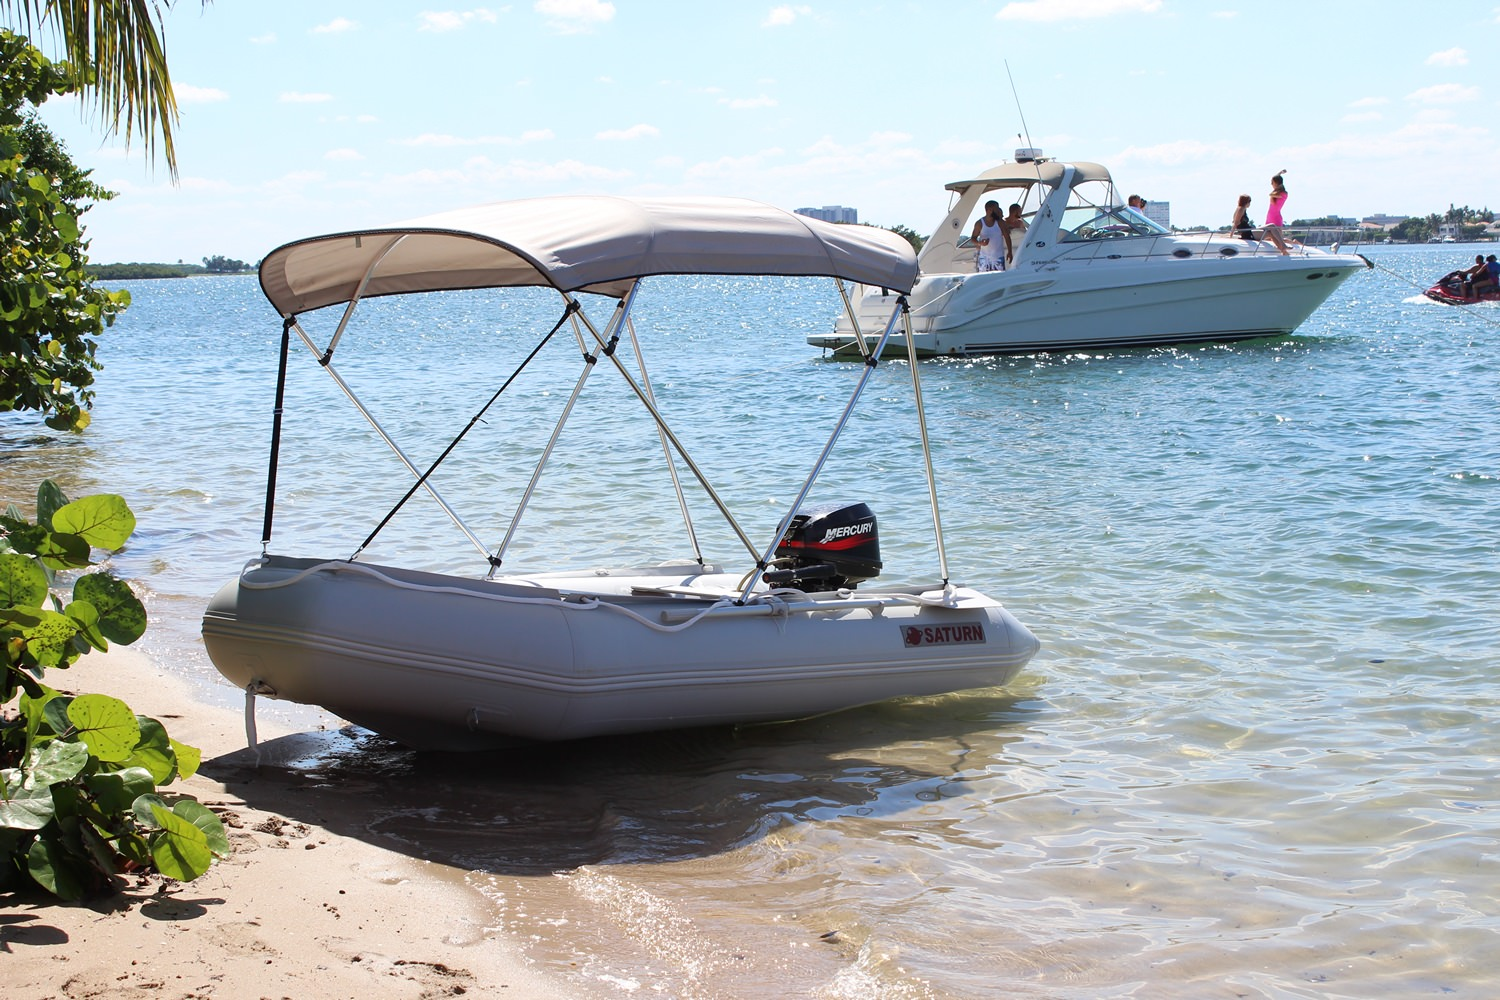 11' Saturn Inflatable Boat SD330 - With Bimini Top